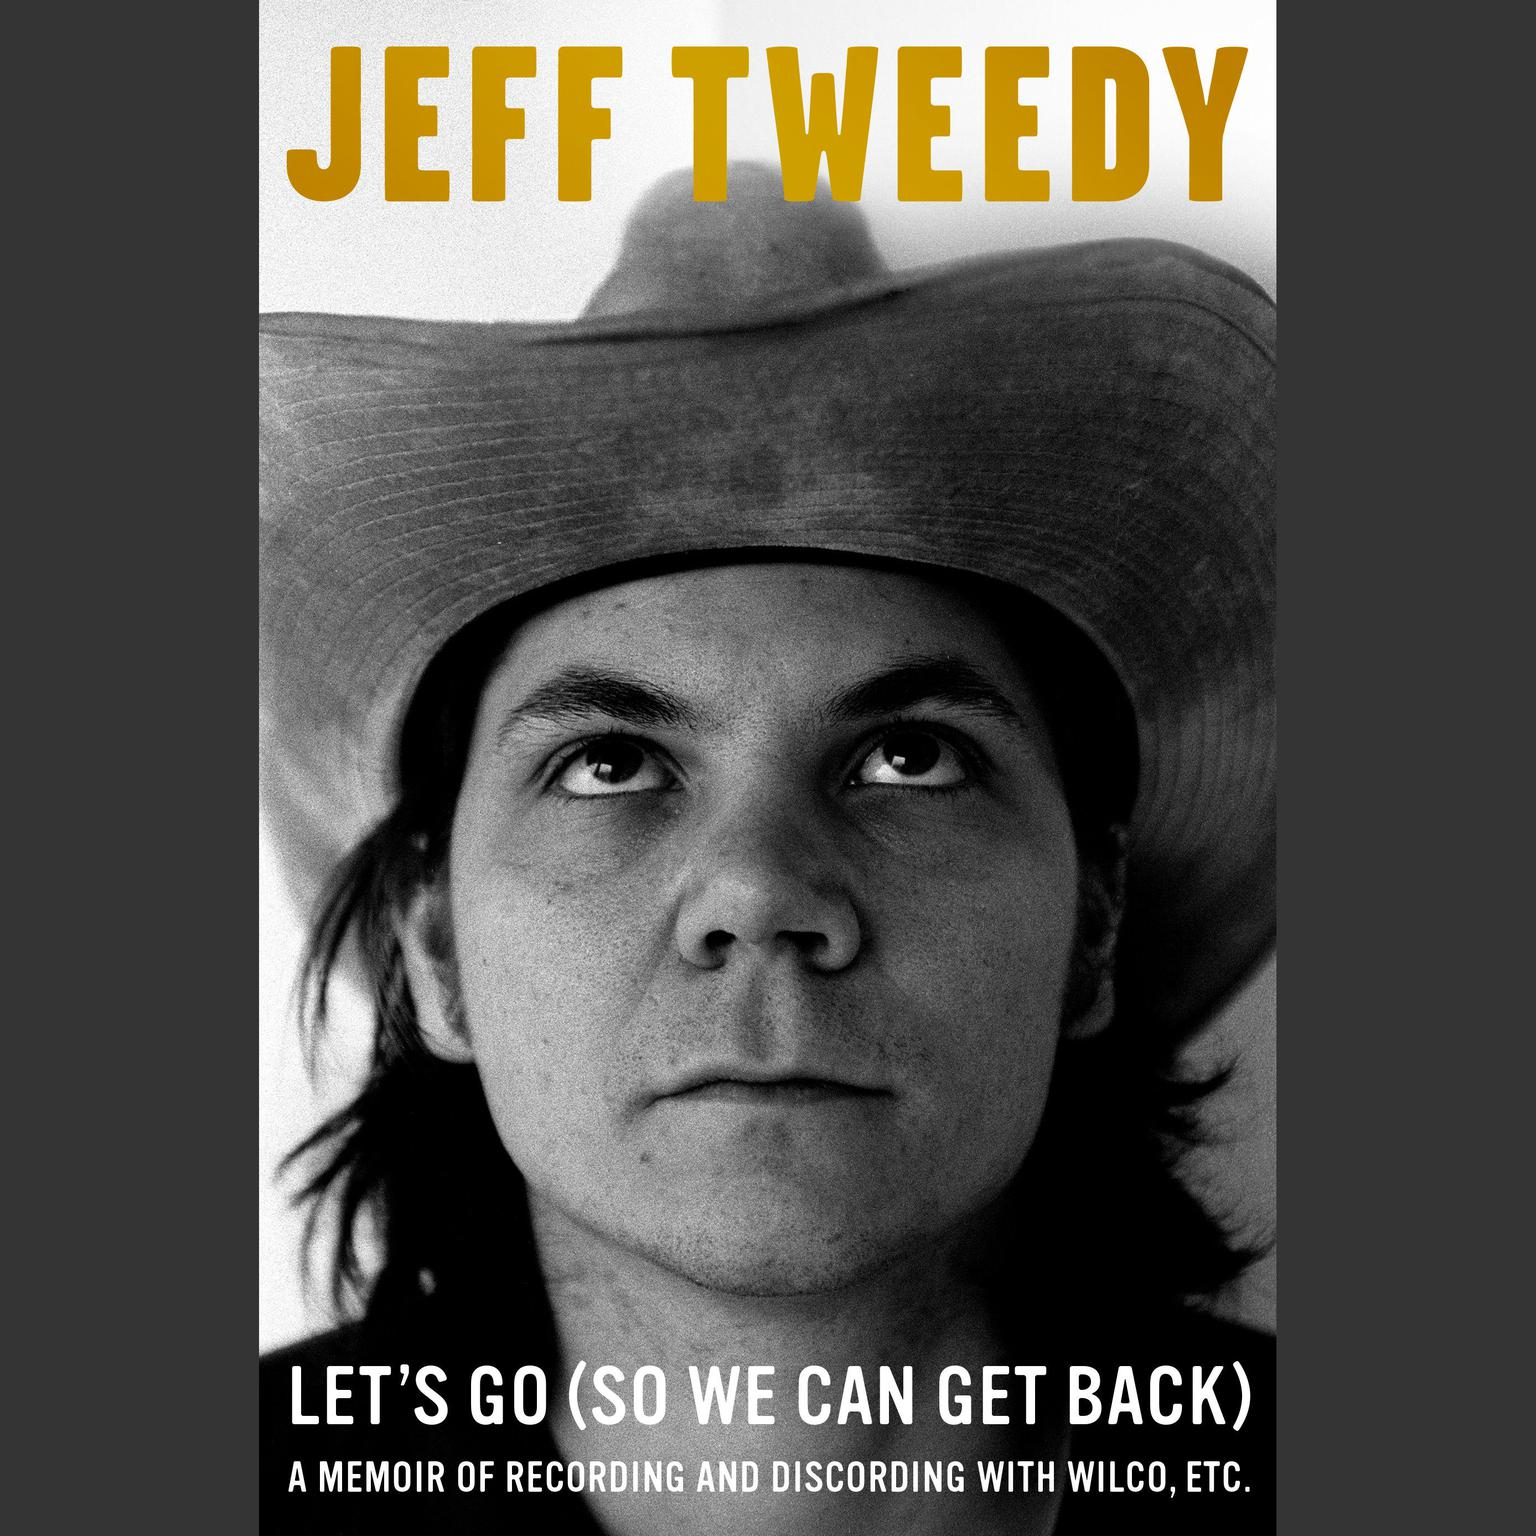 Lets Go (So We Can Get Back): A Memoir of Recording and Discording with Wilco, Etc. Audiobook, by Jeff Tweedy